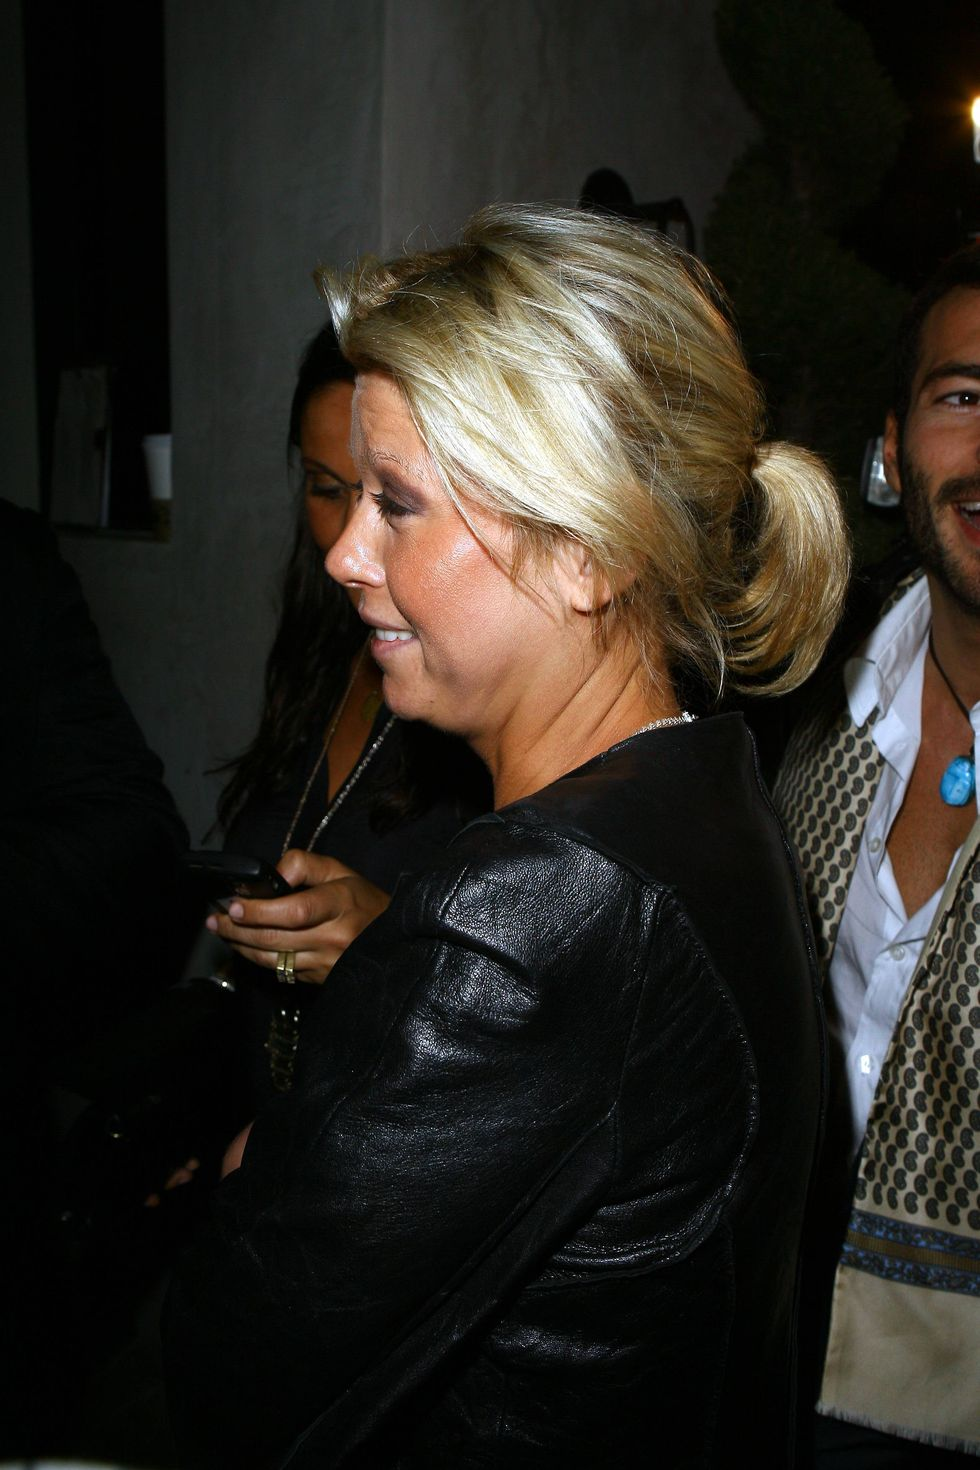 tara-reid-cleavage-candids-at-club-goa-01